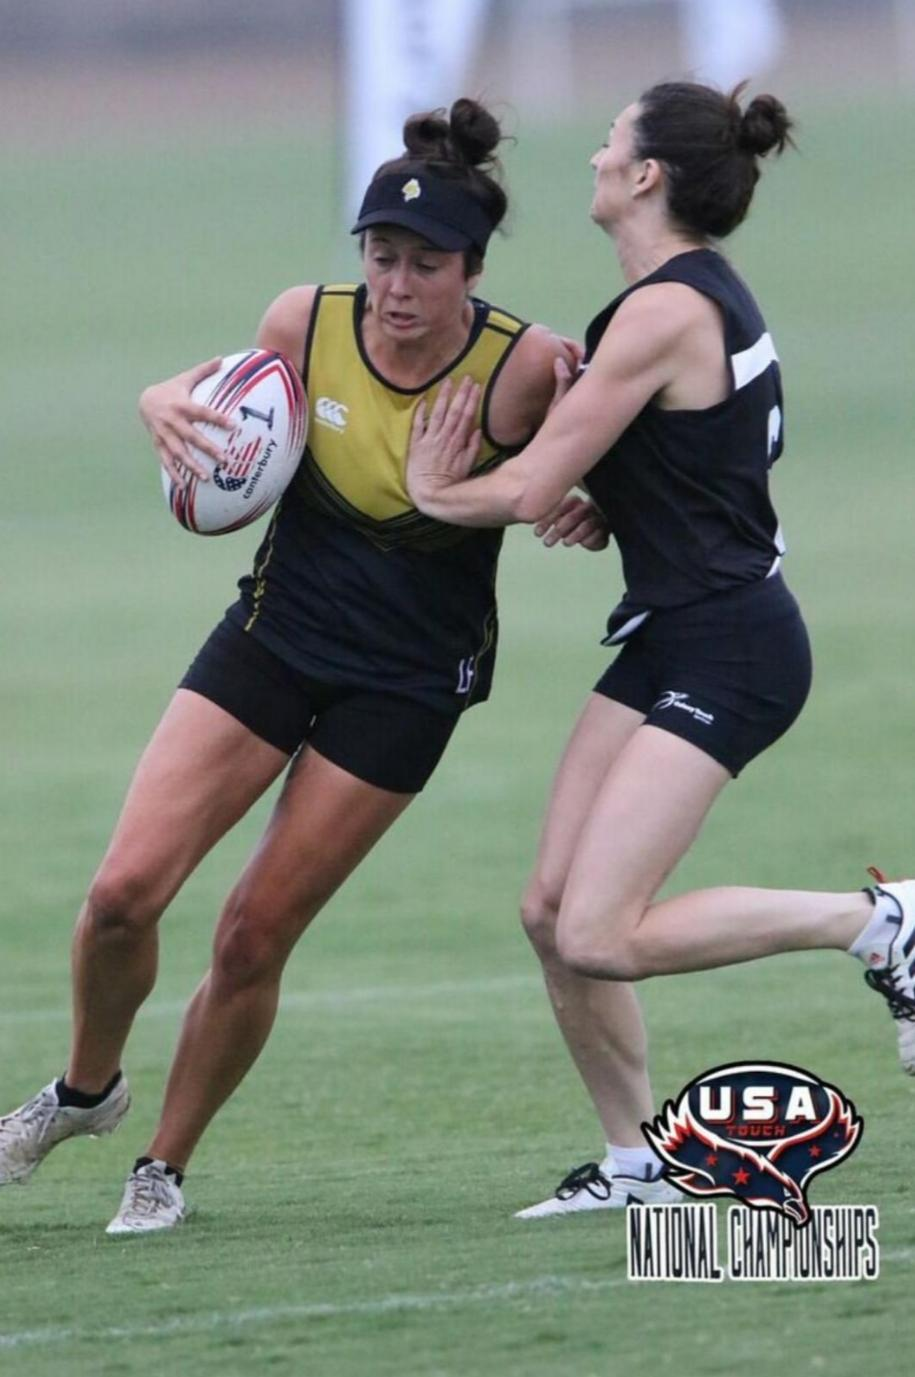 Lisa Finegan representing at the USA Nationals at The Olympic Training Center 2019